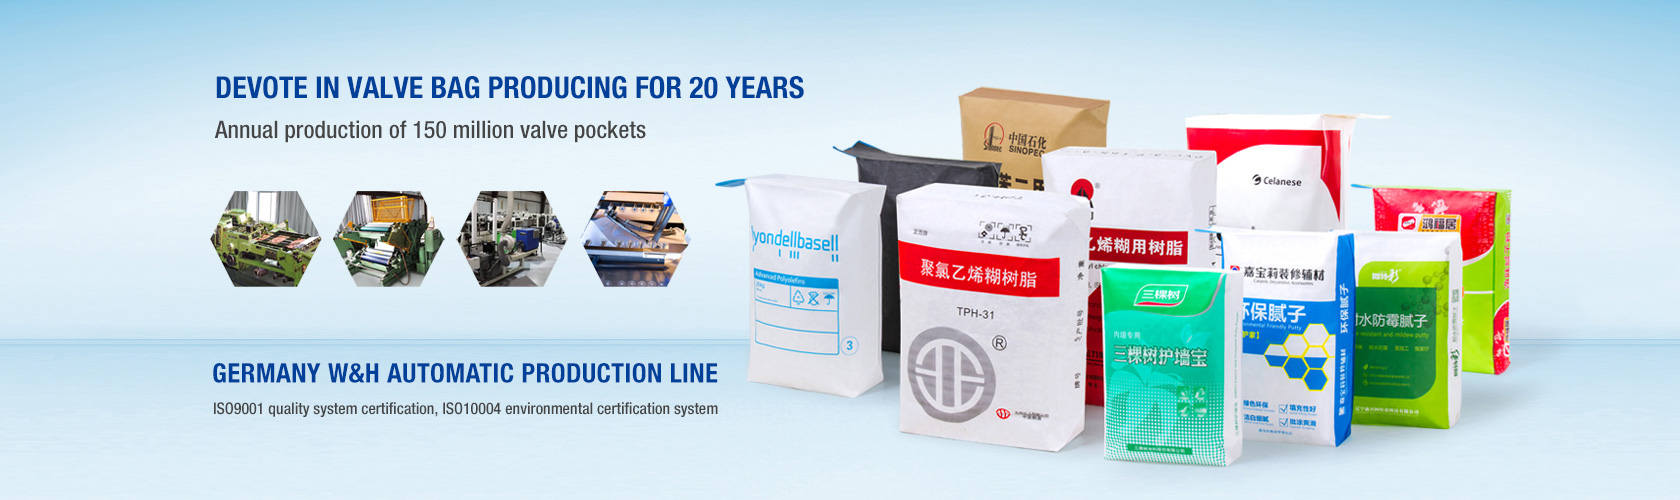 devote in valve bag producing for 20 years